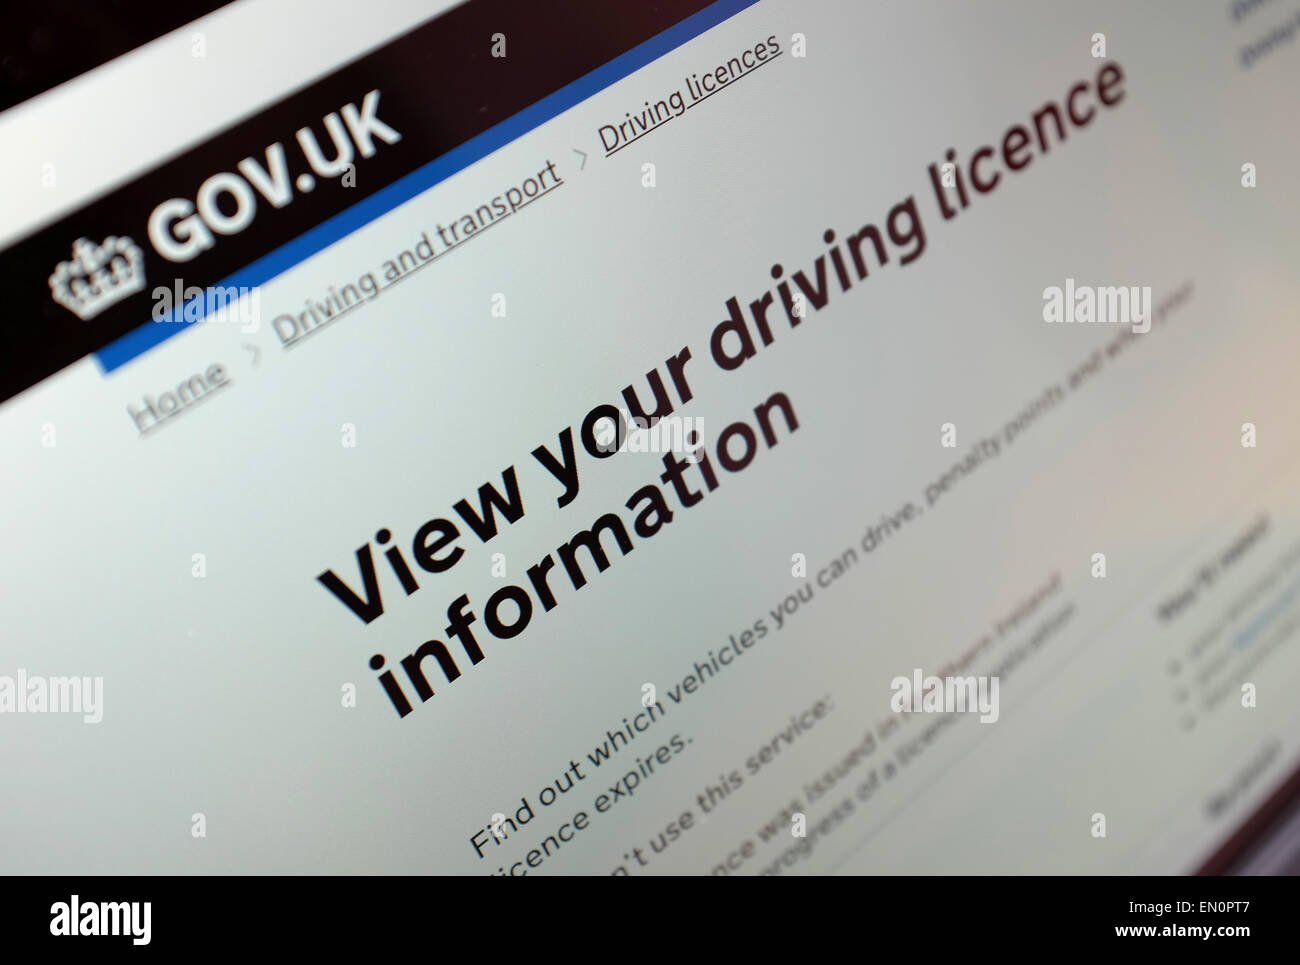 A woman reviews her driving licence online. - Stock Image